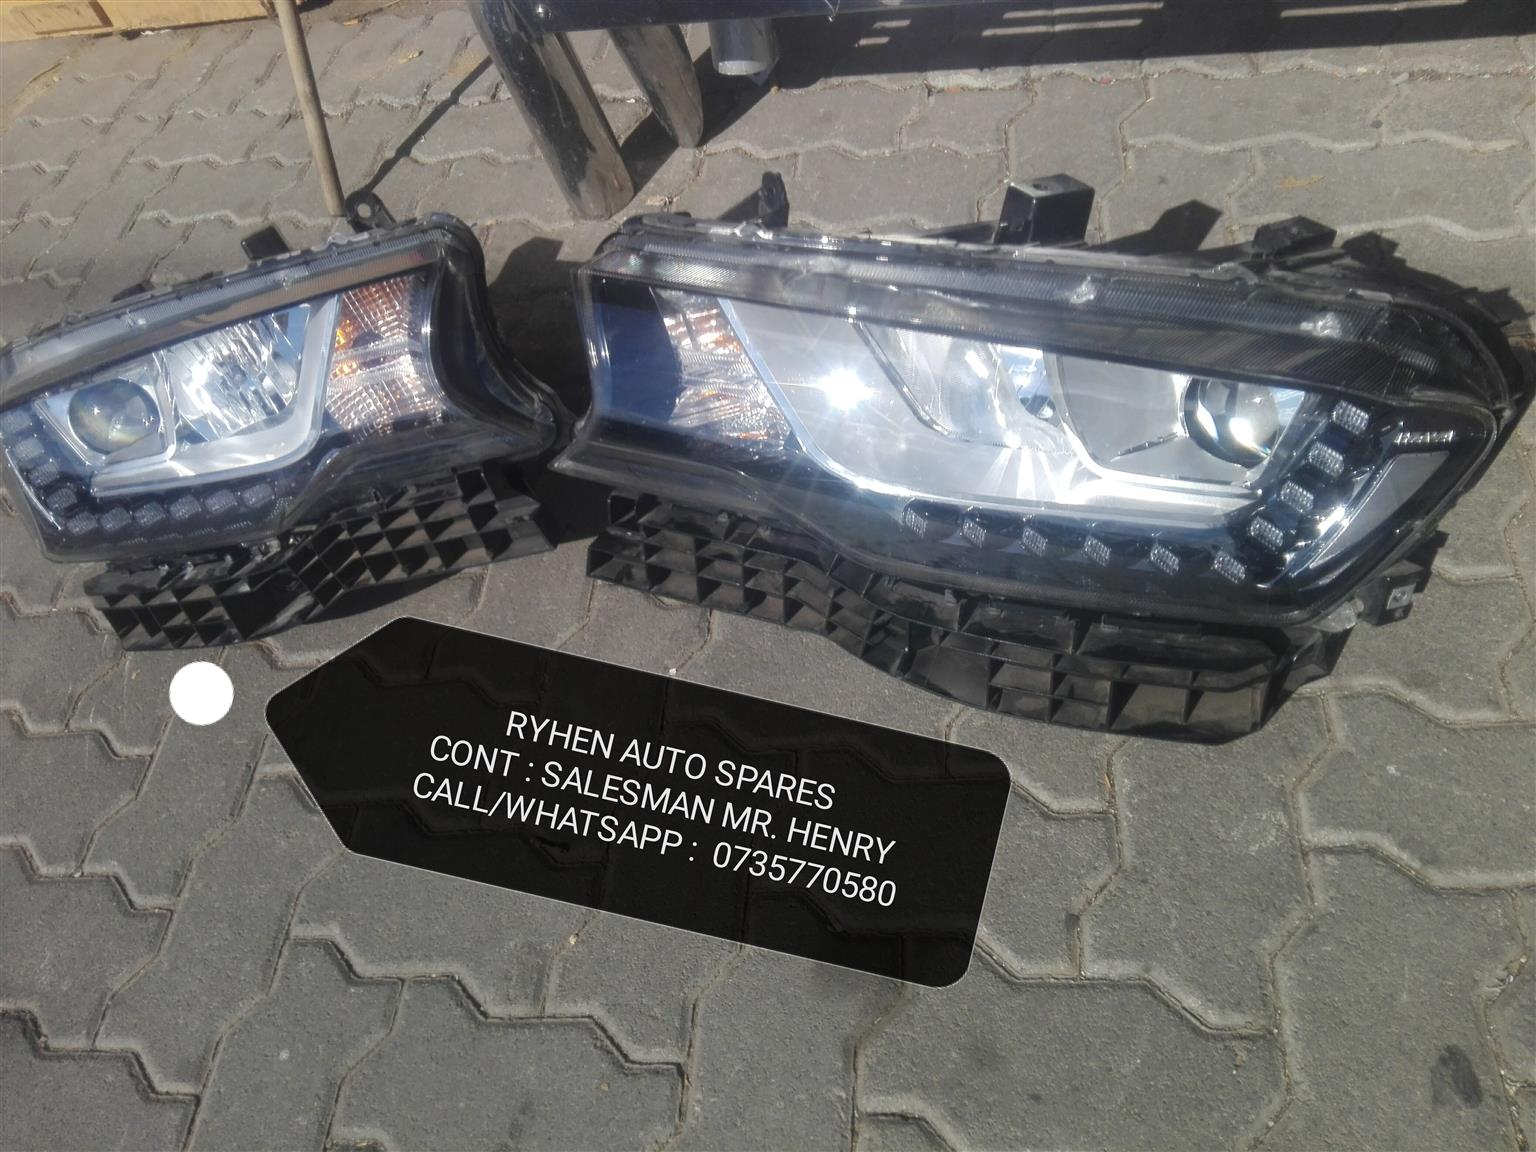 2019 Haval H6 xenon headlight (Complete with brackets )